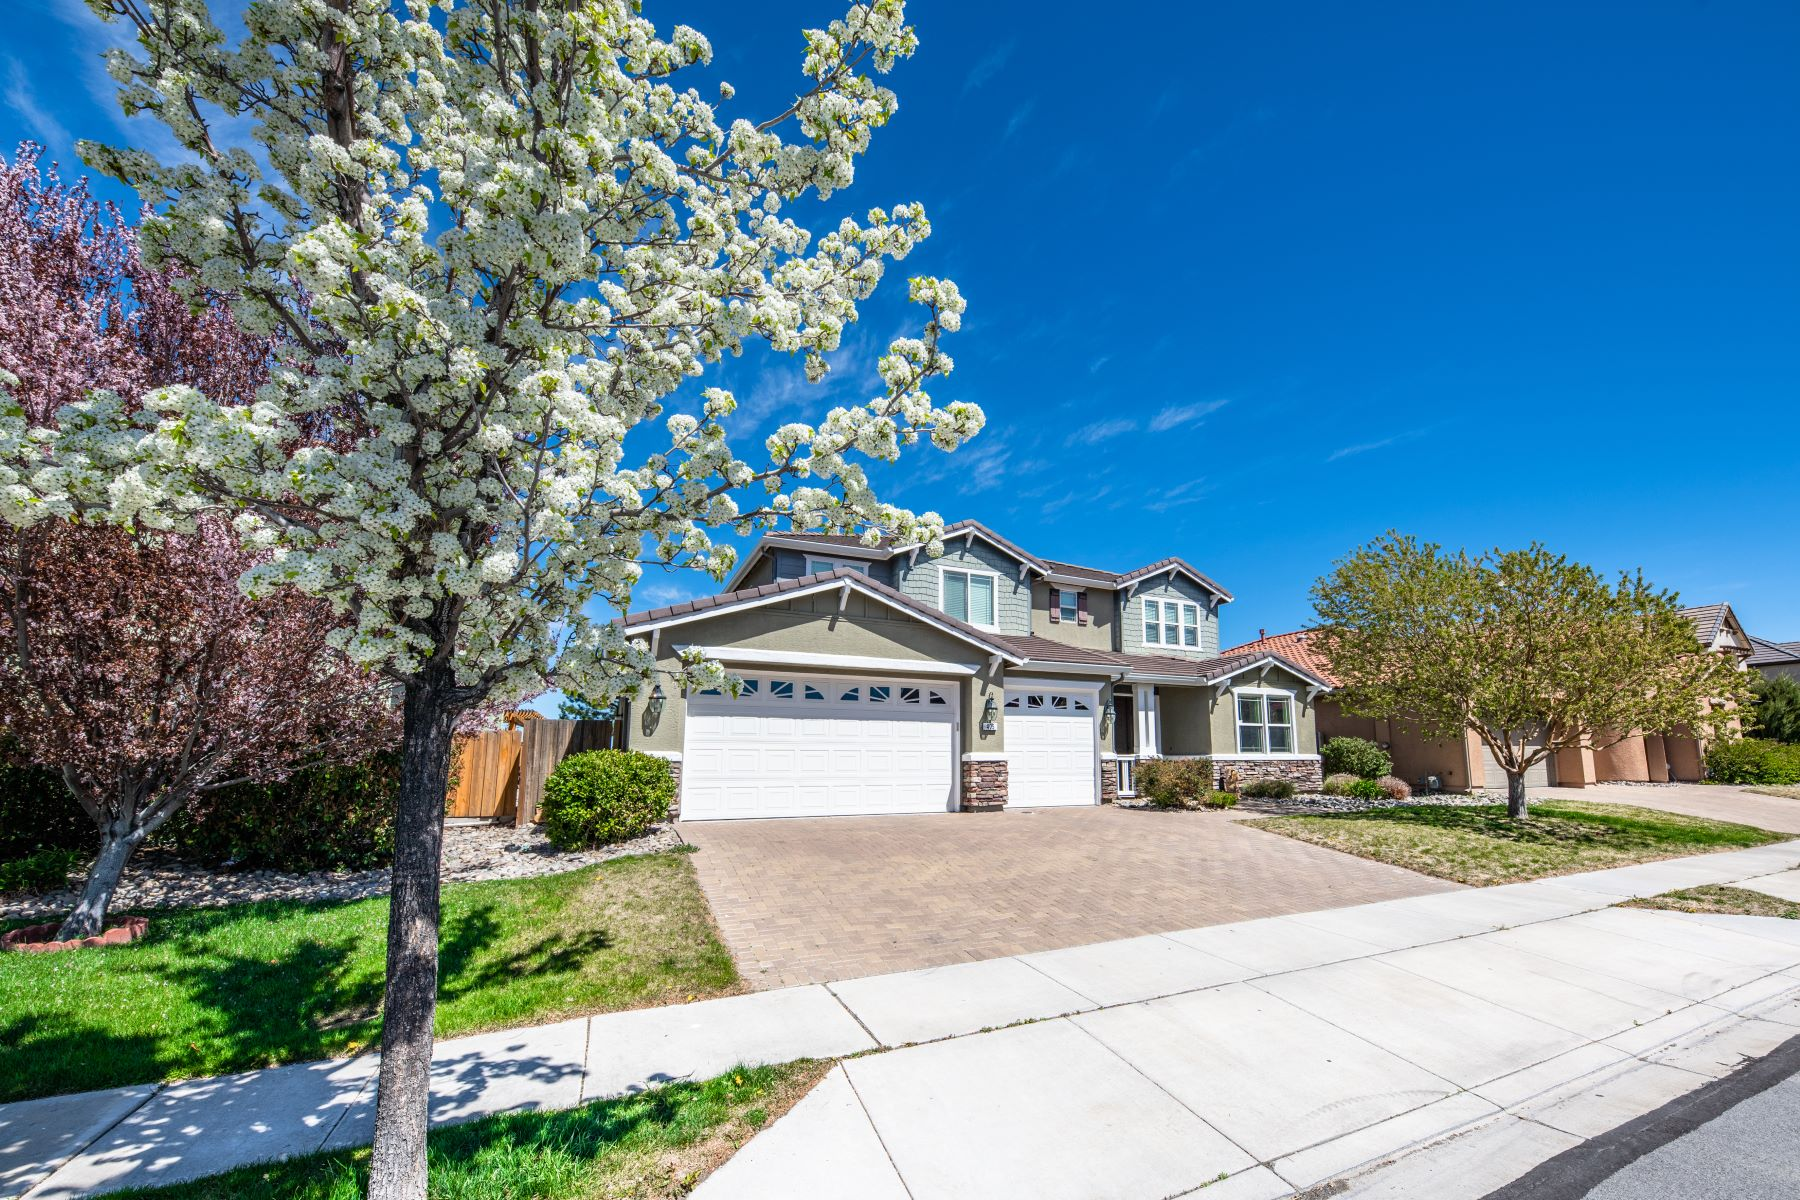 Single Family Homes for Active at 405 Manciano, Reno, Nevada 405 Manciano Reno, Nevada 89521 United States